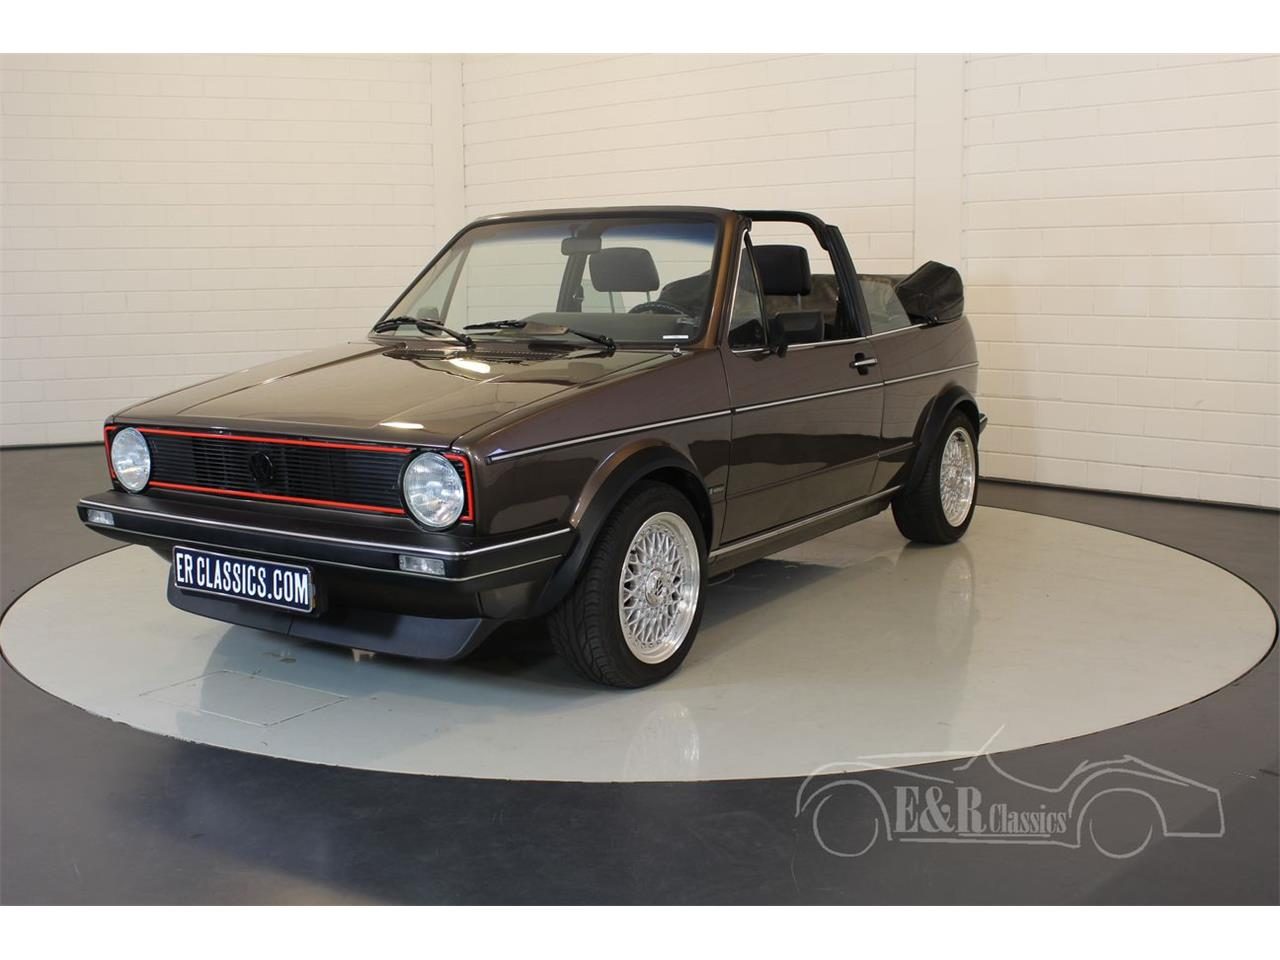 Large Picture of 1984 Volkswagen Golf located in Waalwijk - Keine Angabe - - $19,100.00 - PH4B